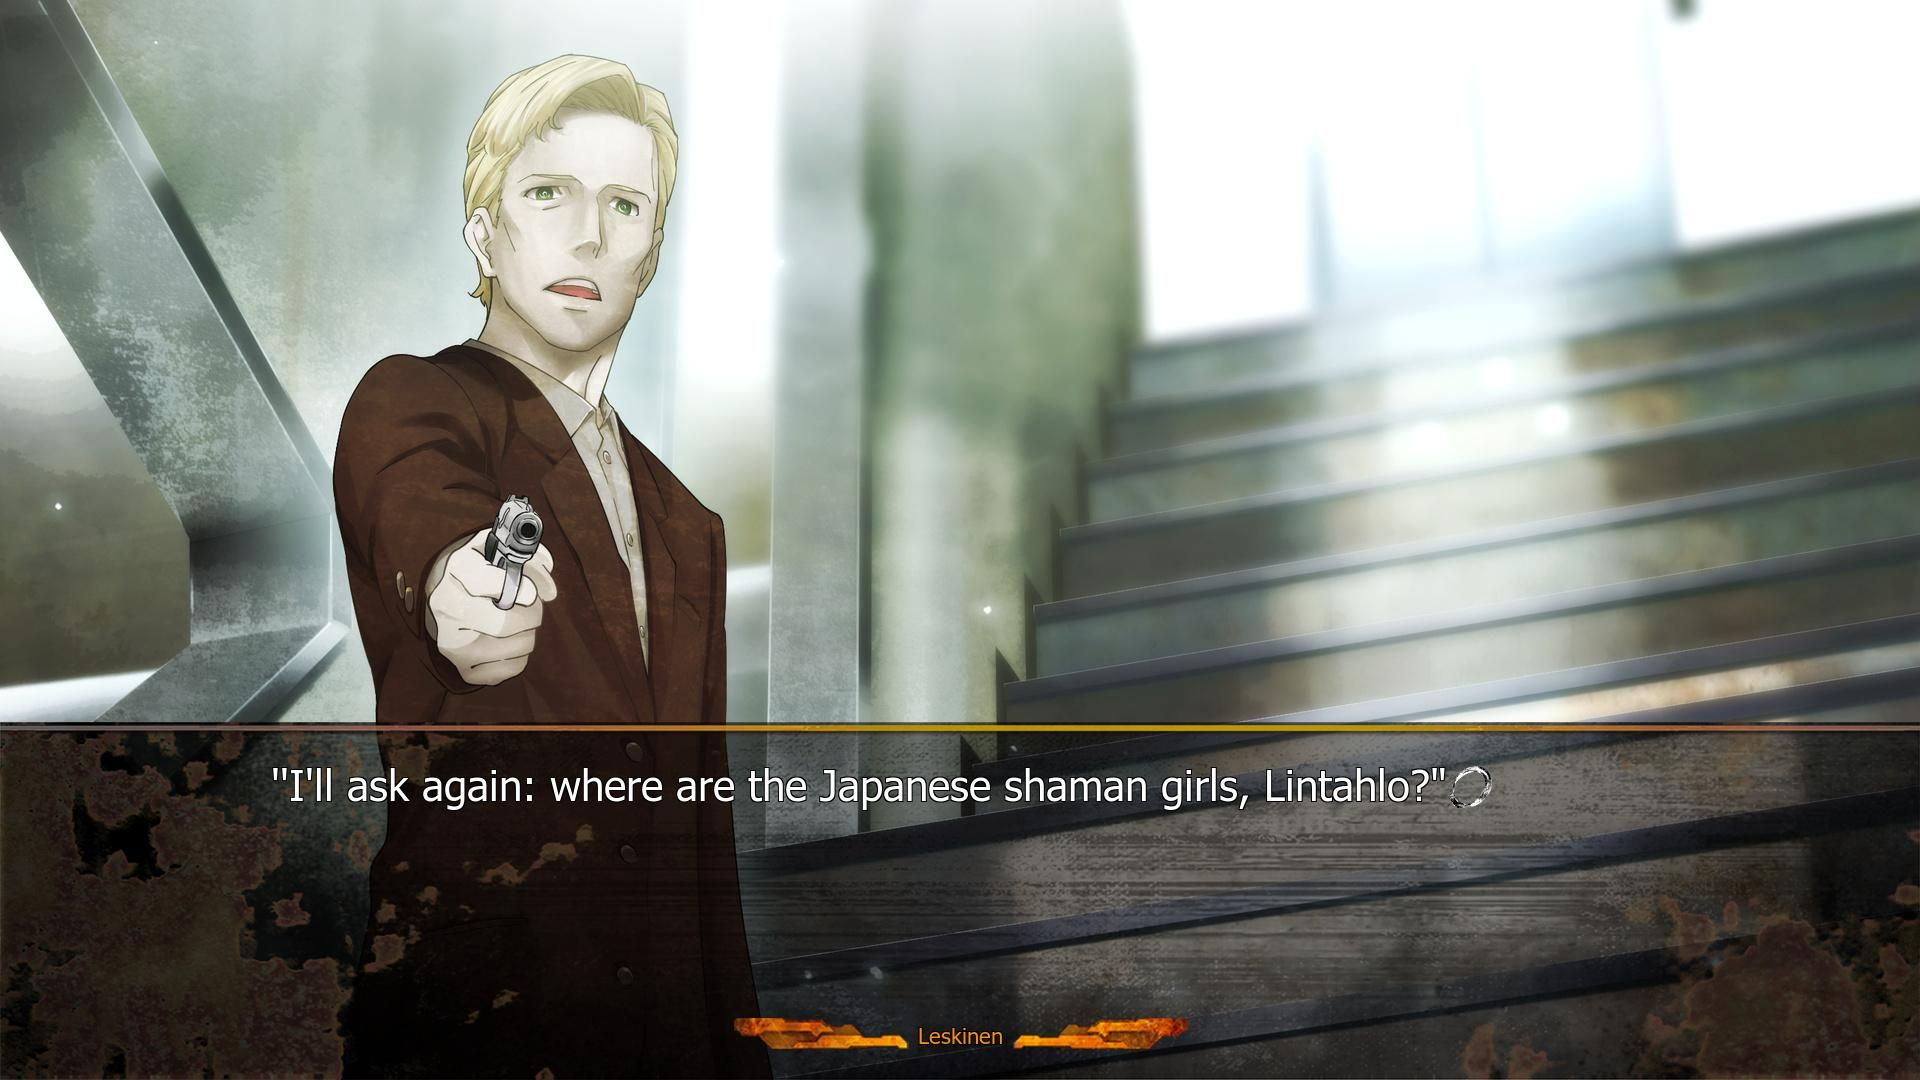 Final battle with Leskinen in Steins;Gate 0